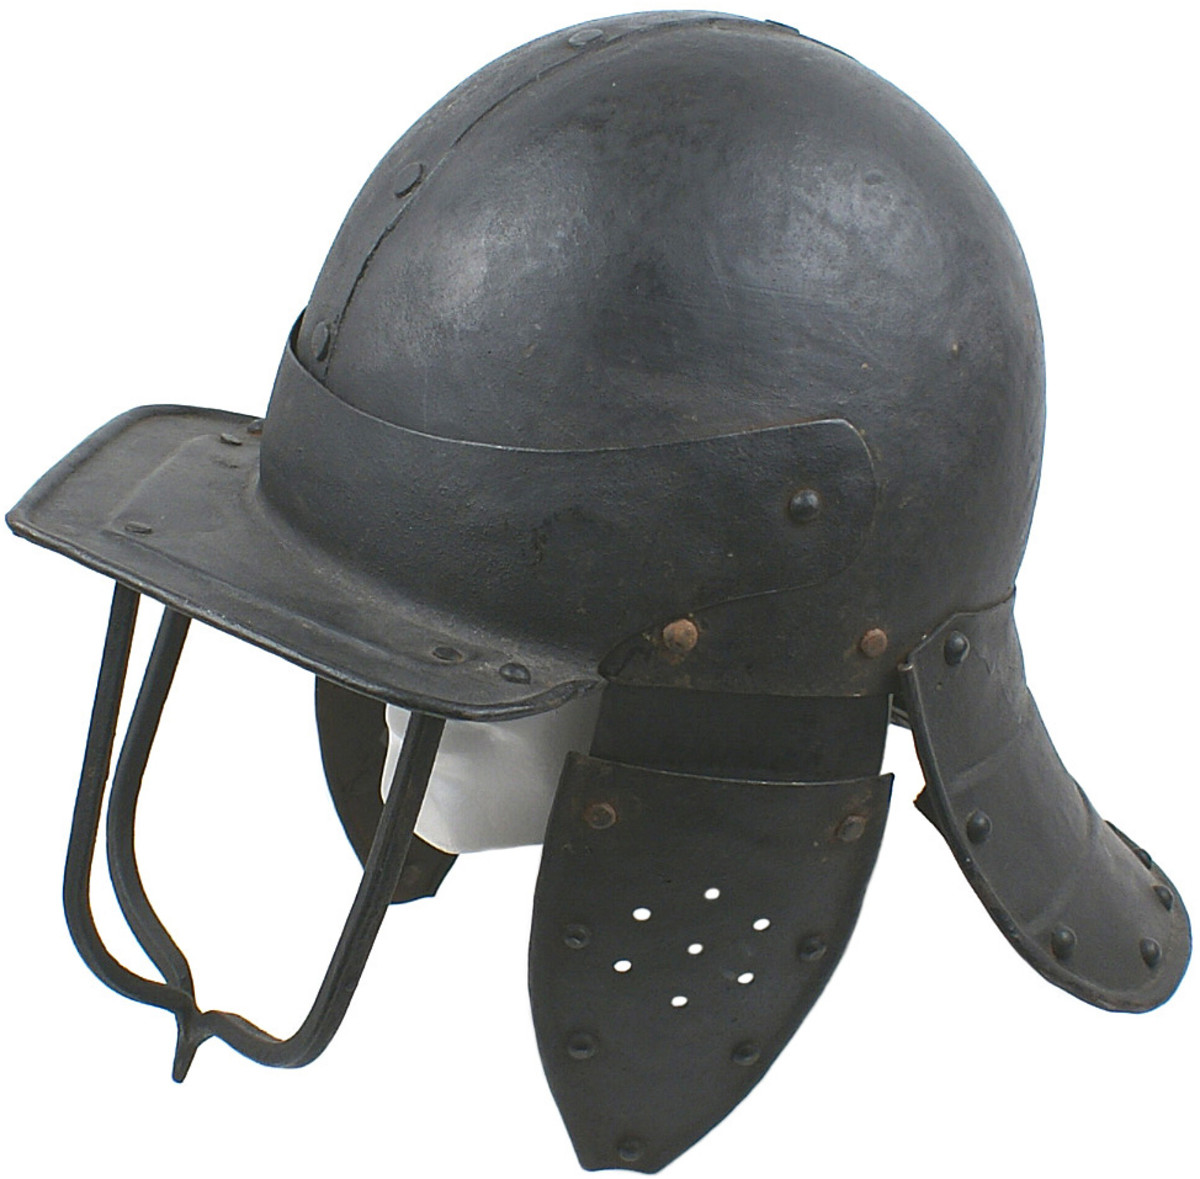 Extremely rare early 17th century English lobster tail Cromwellian helmet (Opening bid: $2,000).